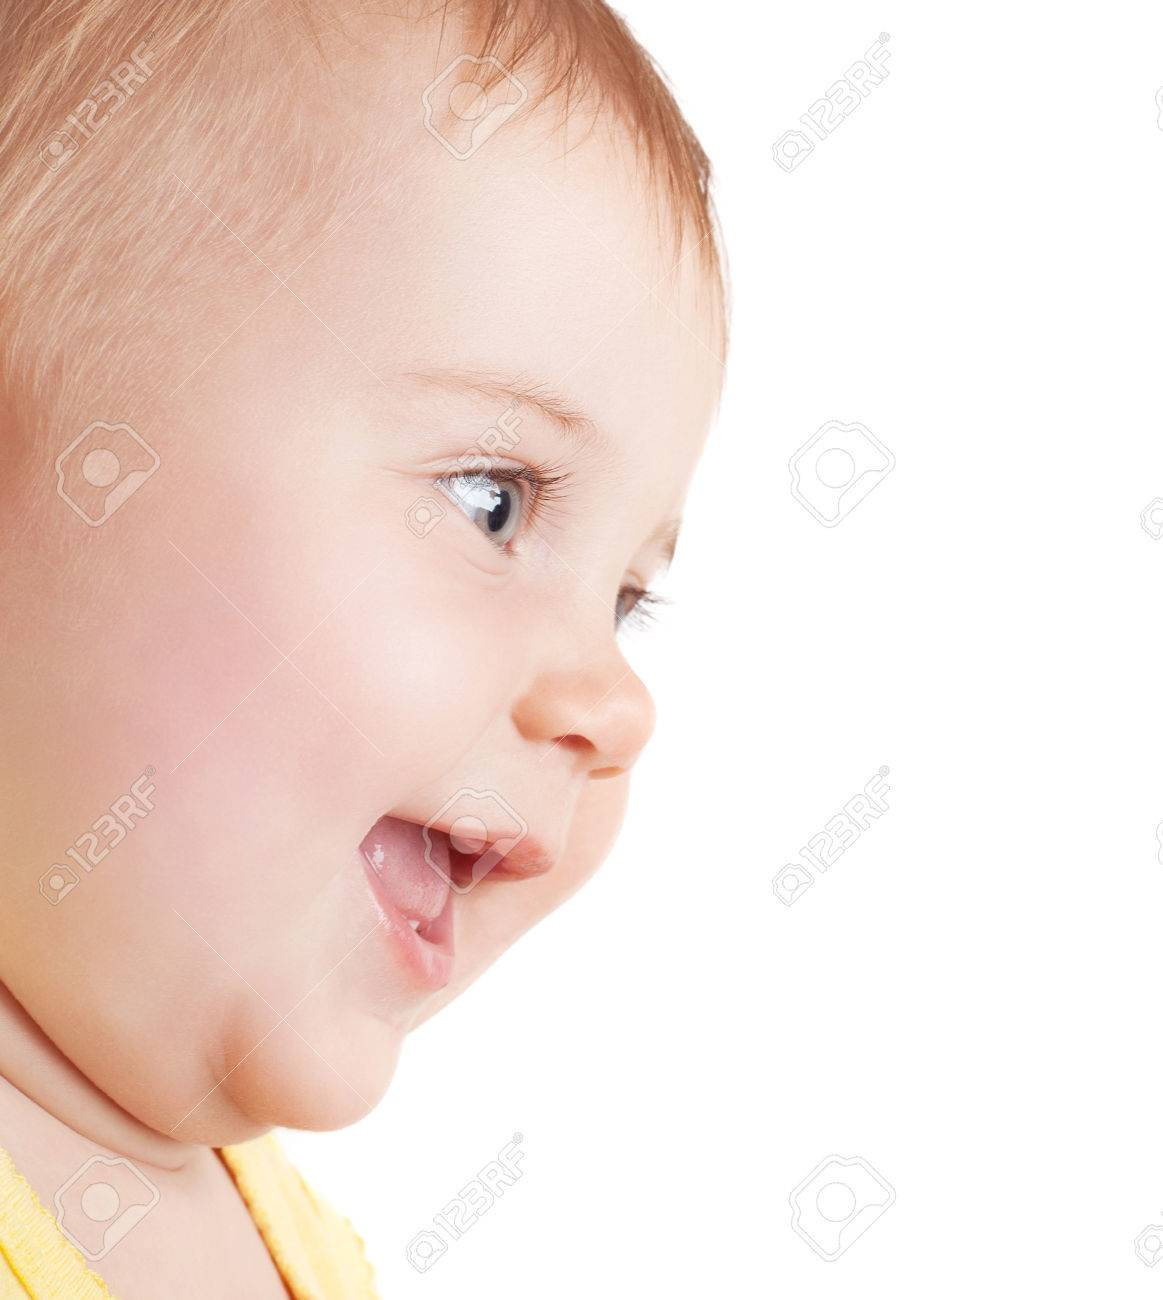 Image of: Baby Boy Closeup Portrait Of Cute Little Girl Laughing Nice Baby Face Isolated On White Background 123rfcom Closeup Portrait Of Cute Little Girl Laughing Nice Baby Face